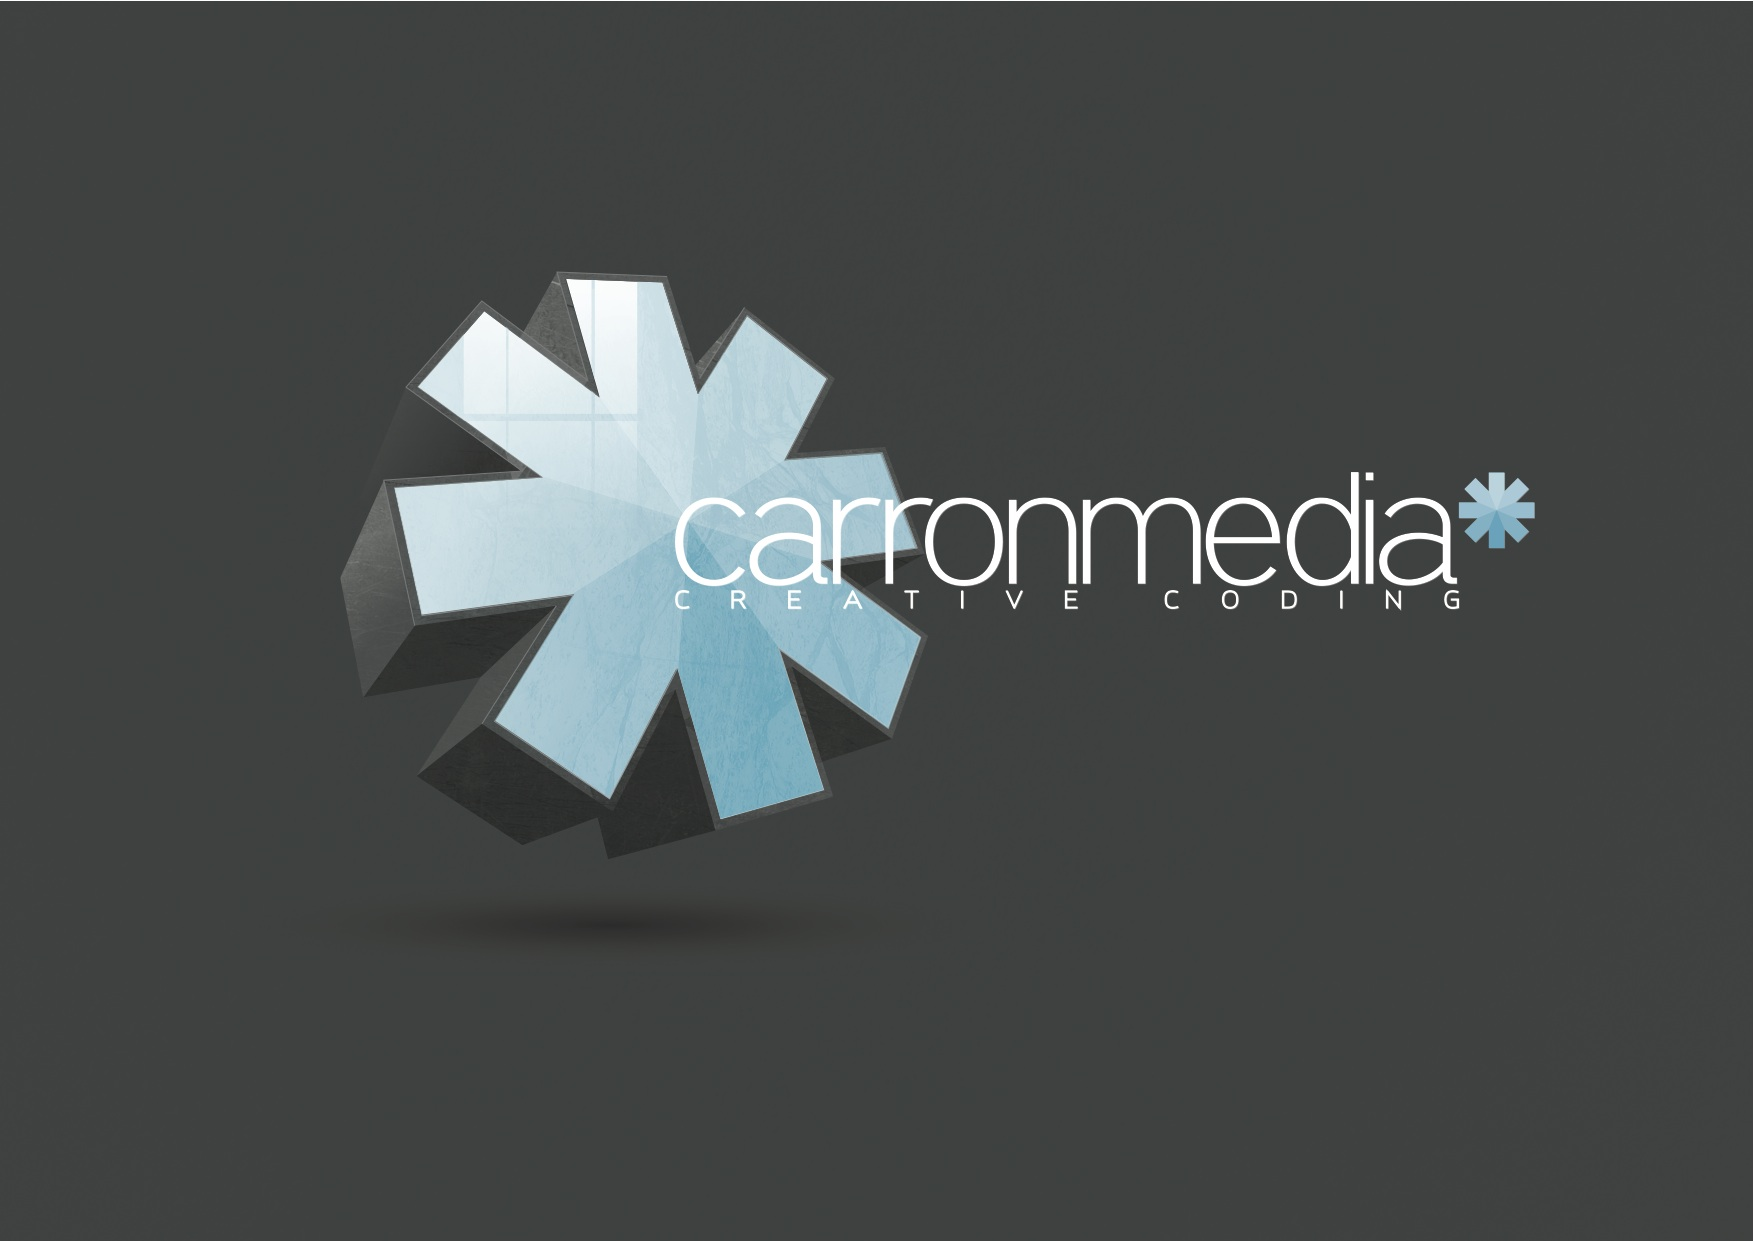 Carronmedia logo and branding design.